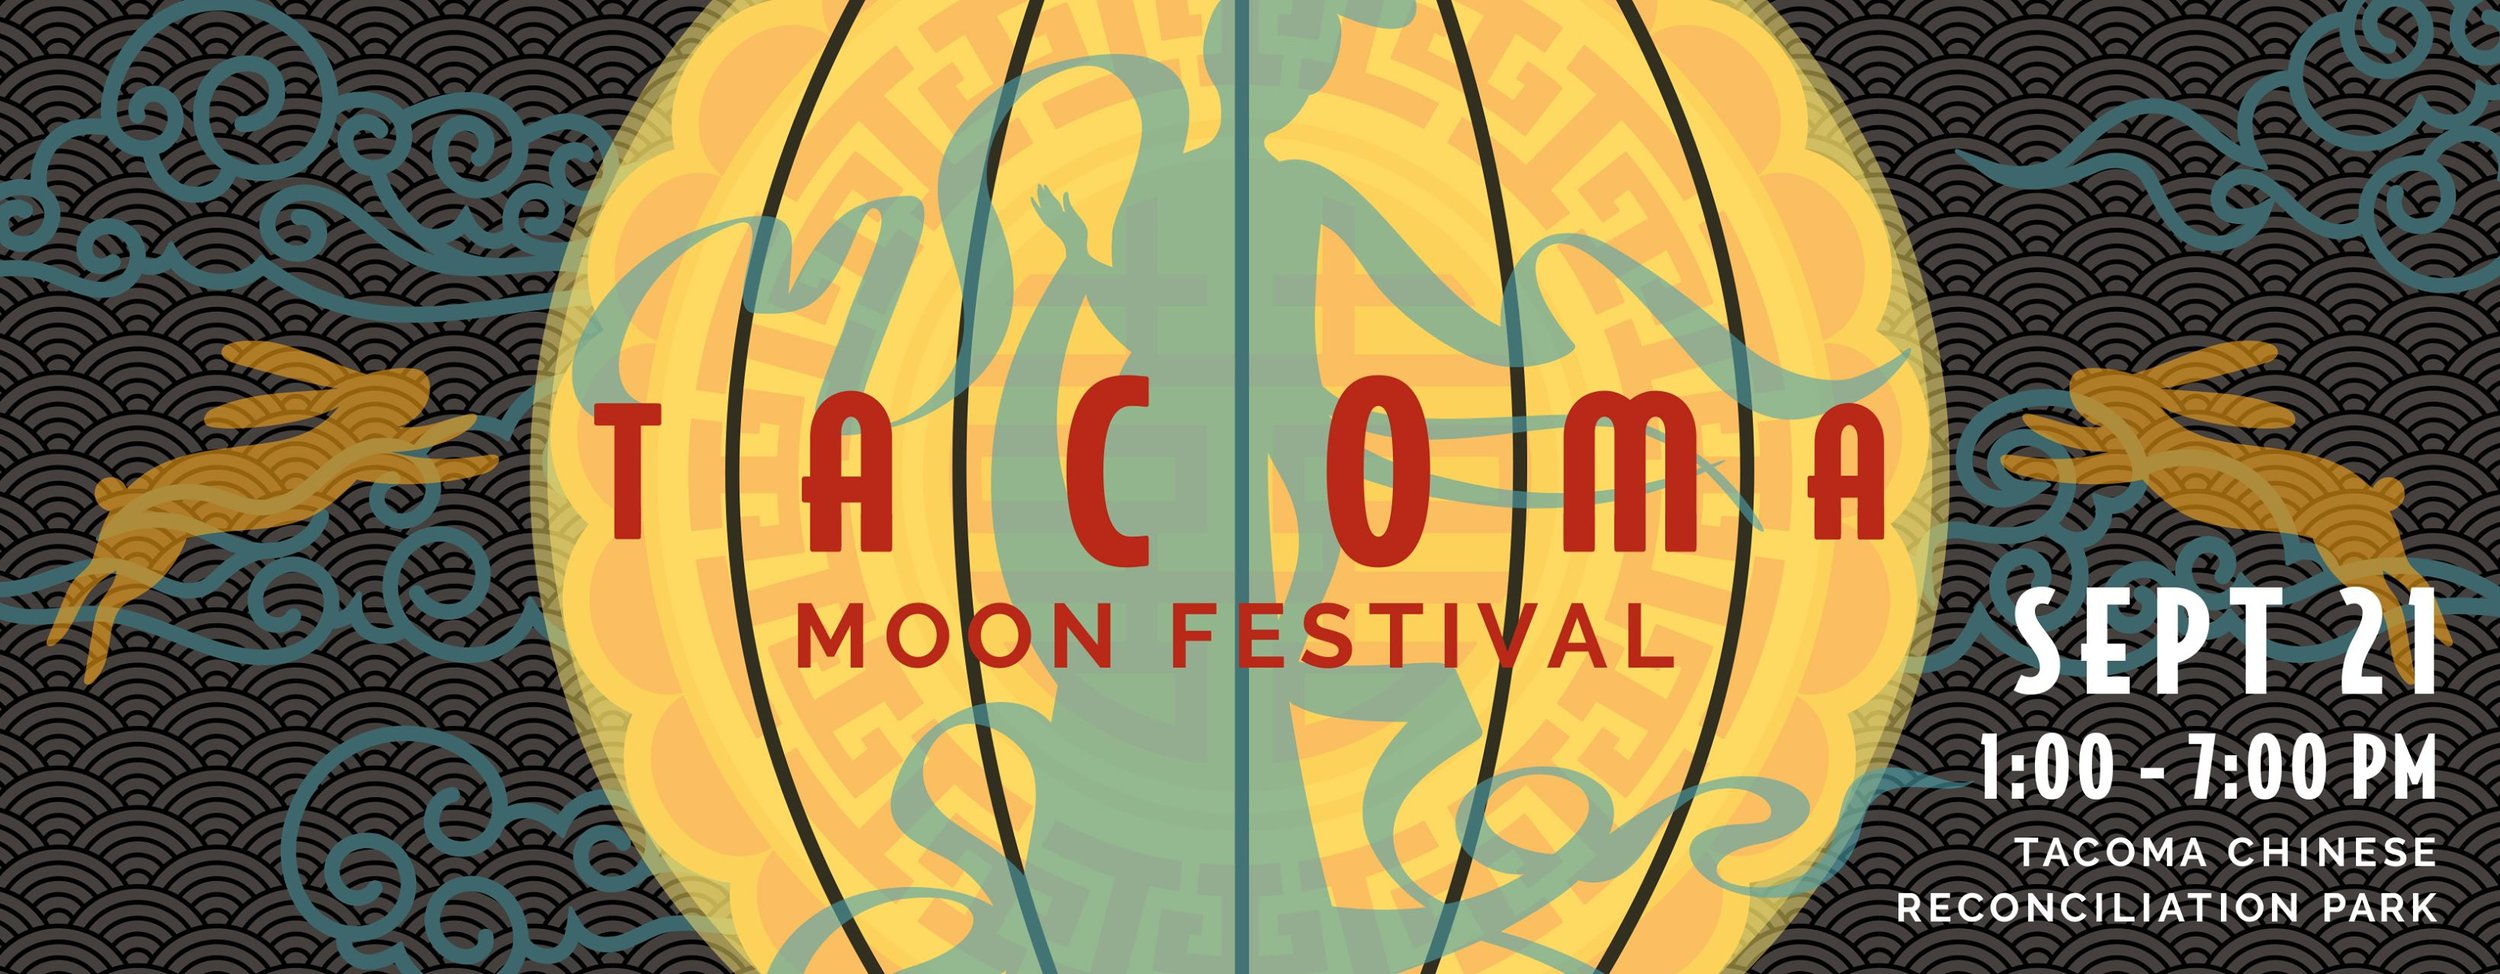 Image from Tacoma Moon Festival